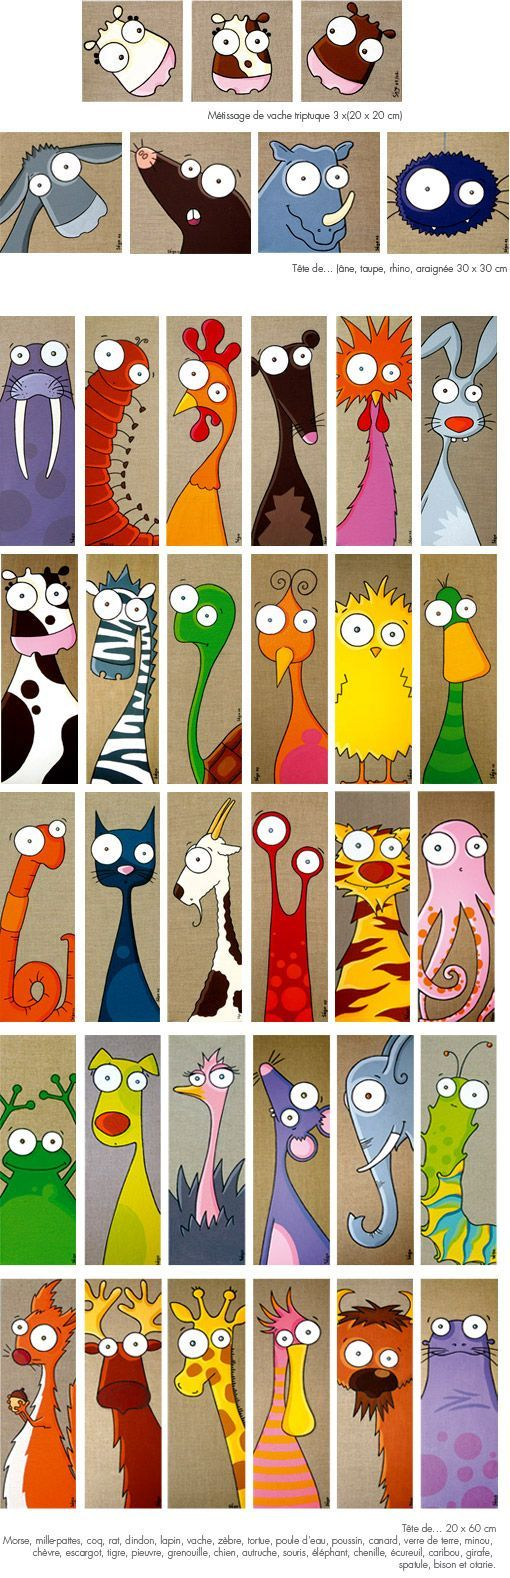 Funny animals, sketch, illustration, drawings, graphic, Kraft paper